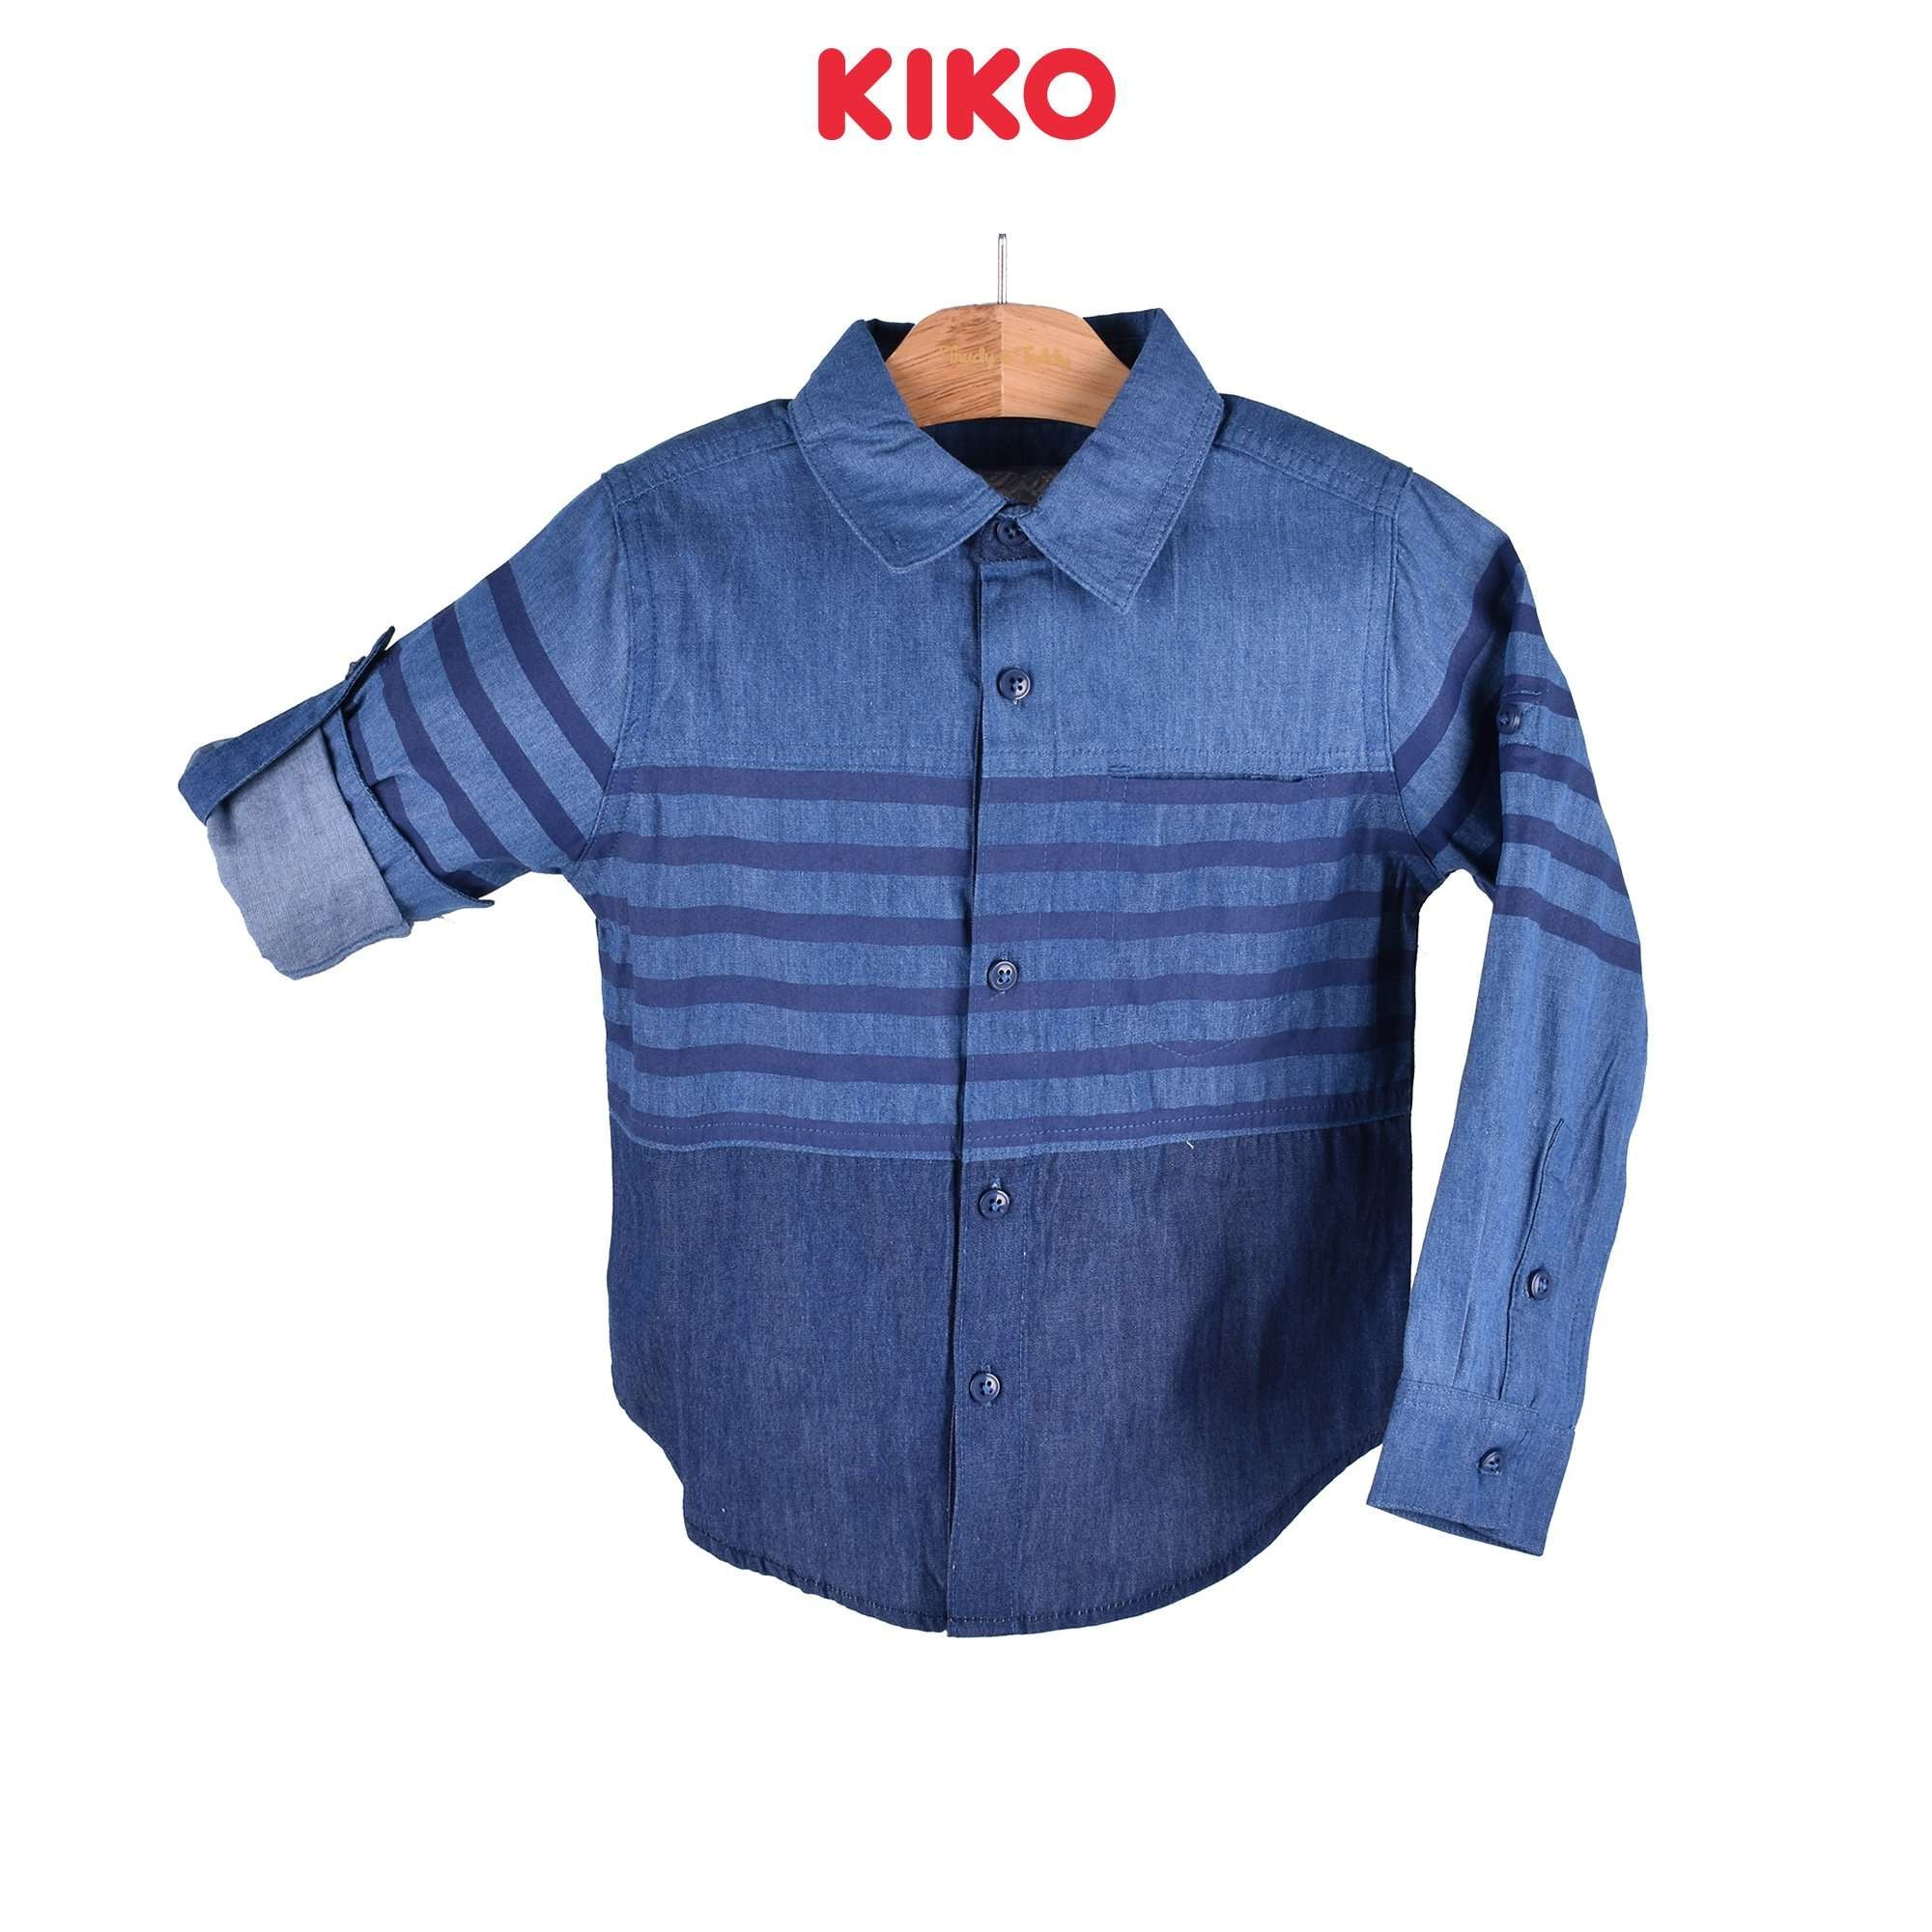 KIKO Boy Long Sleeve Shirt - Blue 110065-153 : Buy KIKO online at CMG.MY